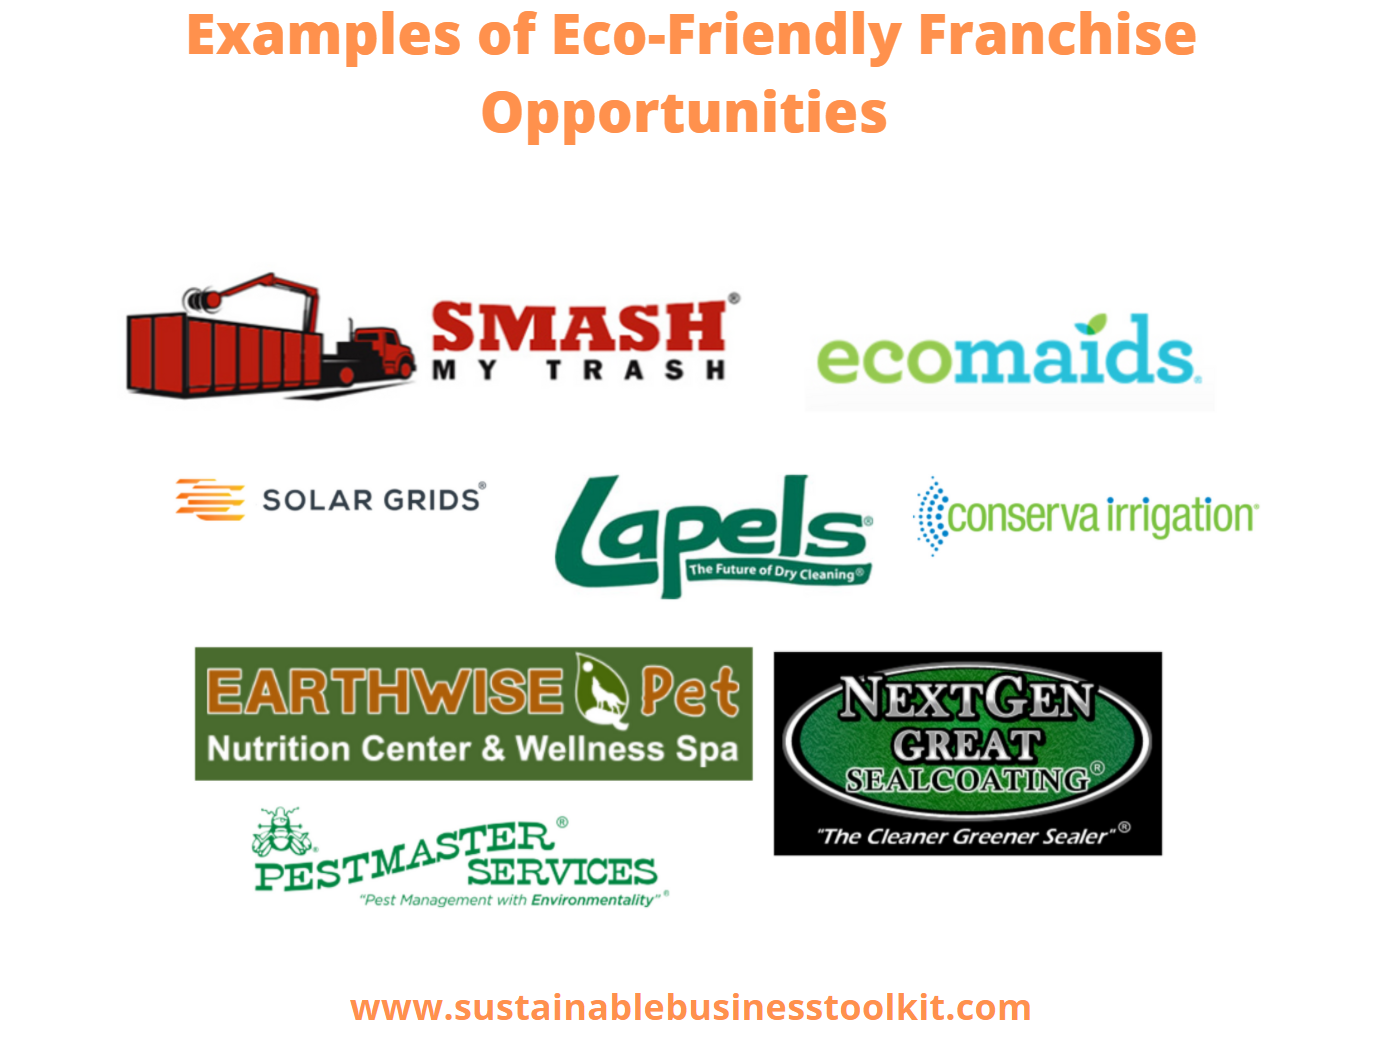 Examples of Eco-Friendly Franchise Opportunities - Green Business Ideas